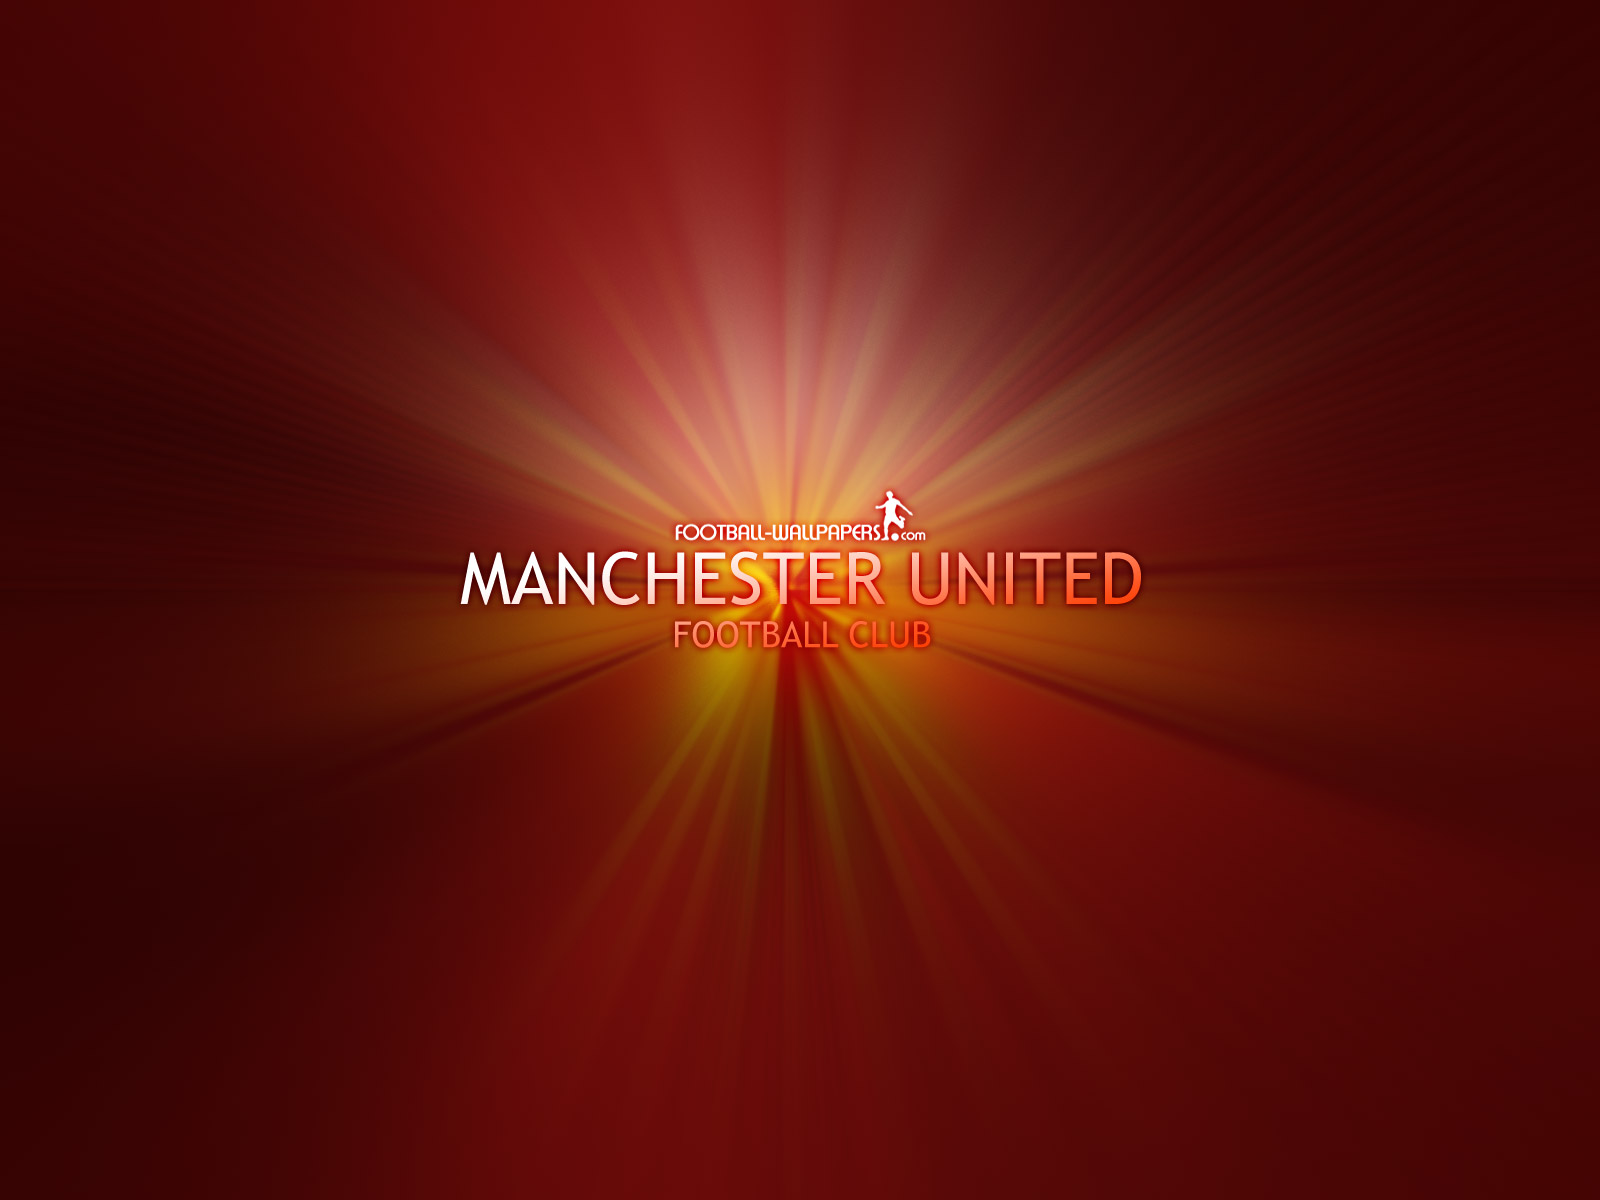 Daily mobile 4 u manchester united logo wallpapers and images manchester united logo voltagebd Image collections